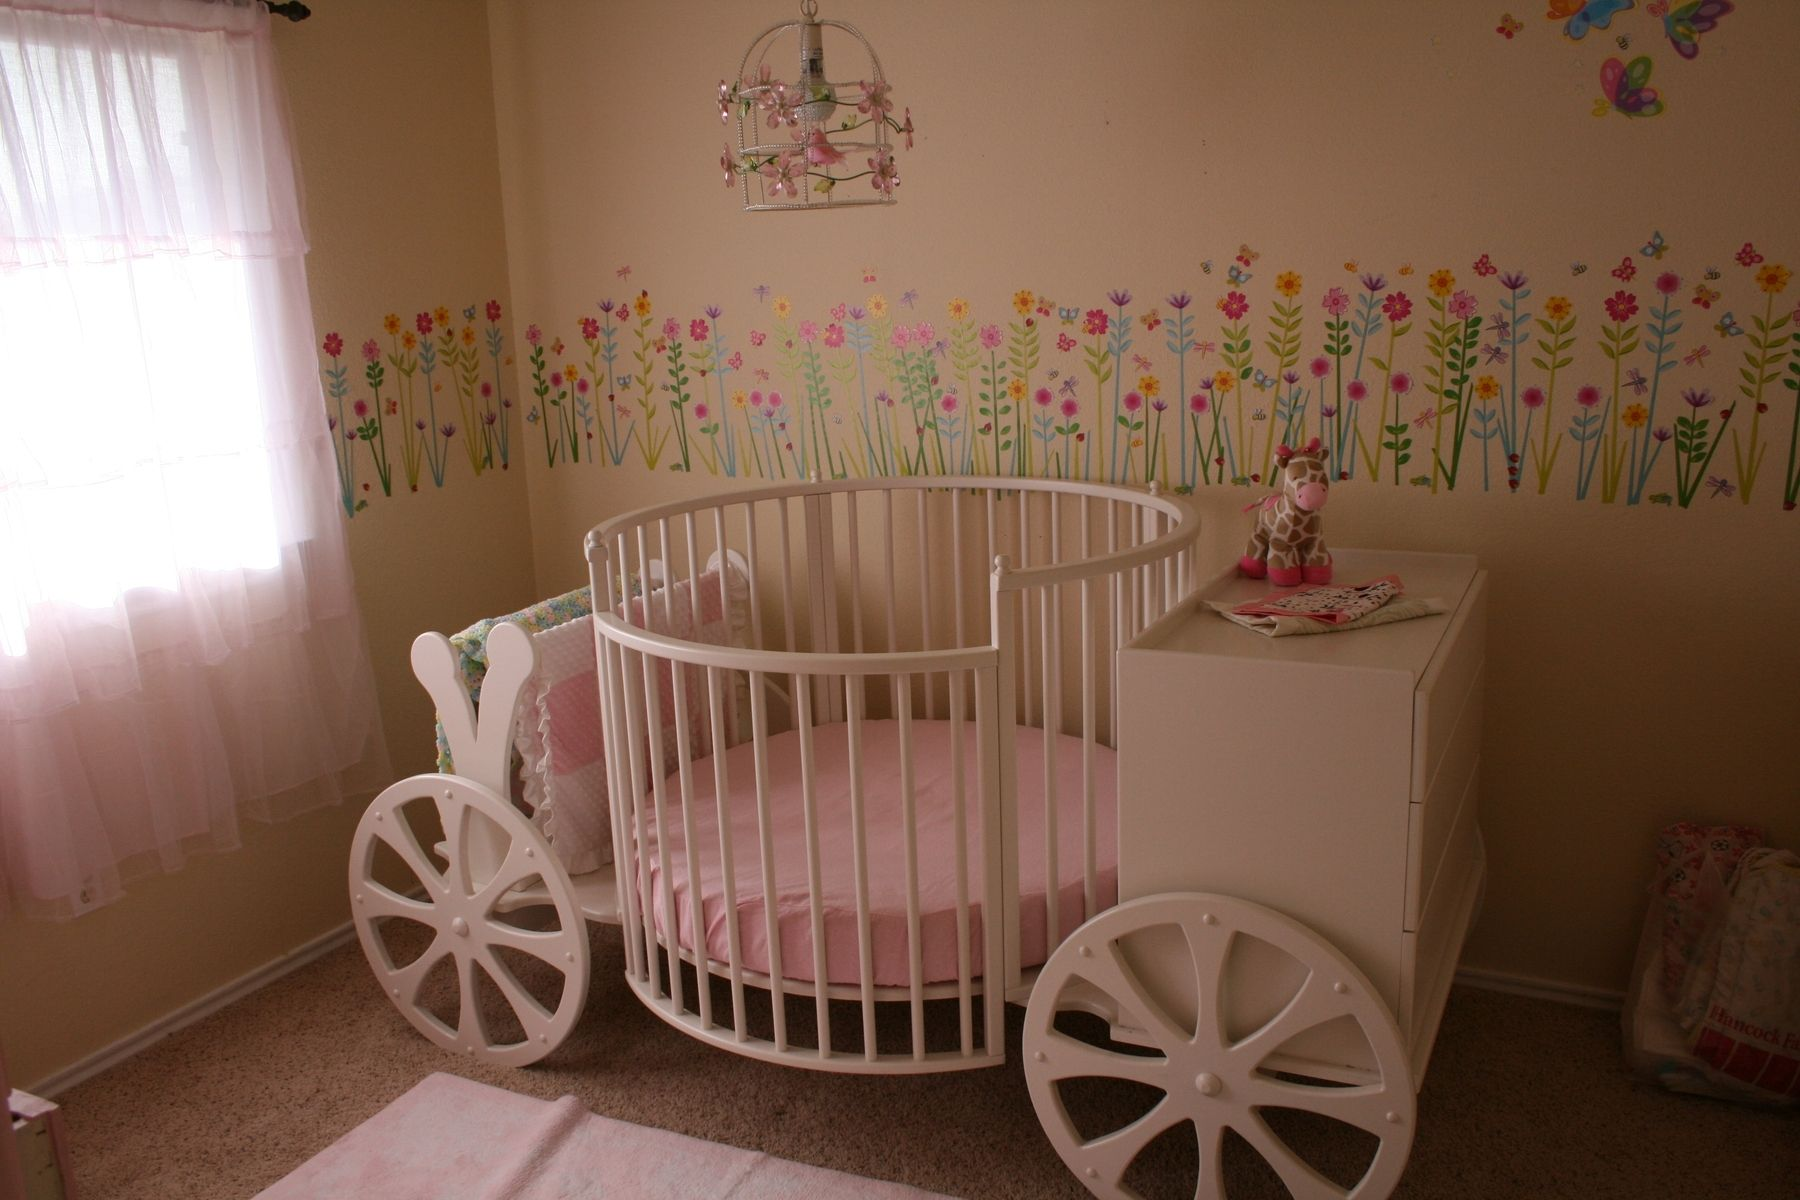 Handmade Carriage Crib By Stoll Furniture And Design